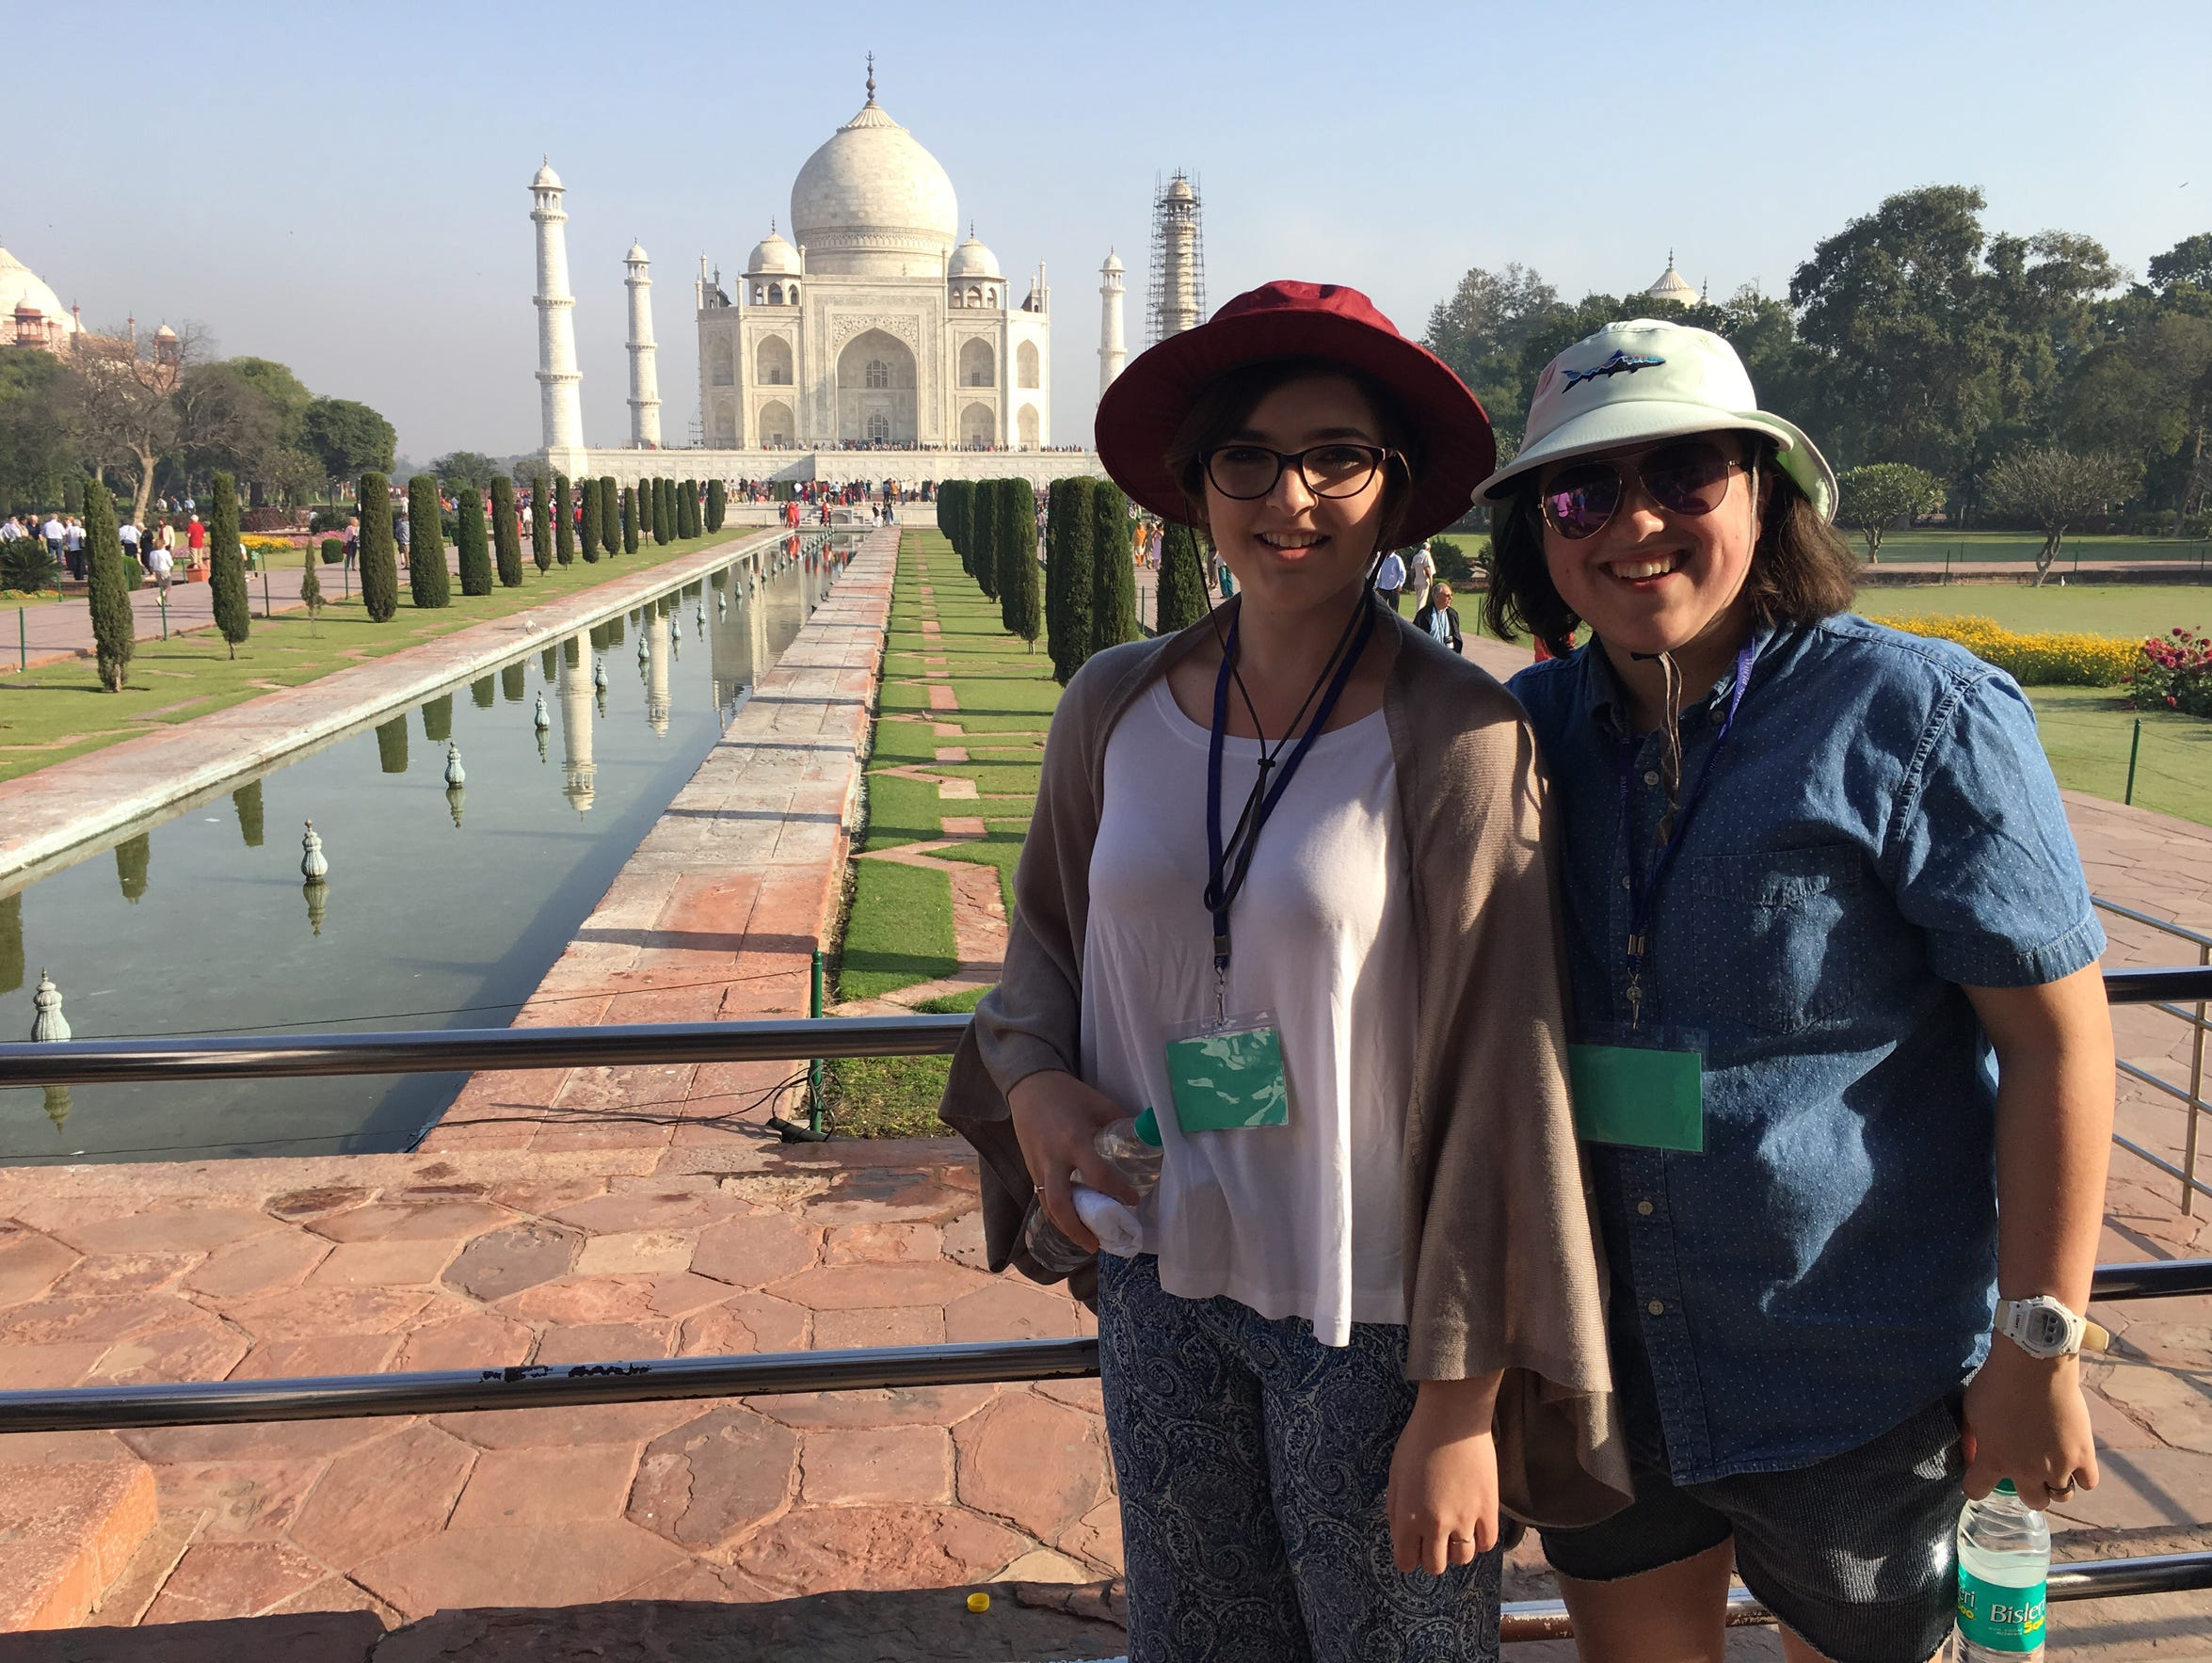 Nicole and me at the Taj Mahal.